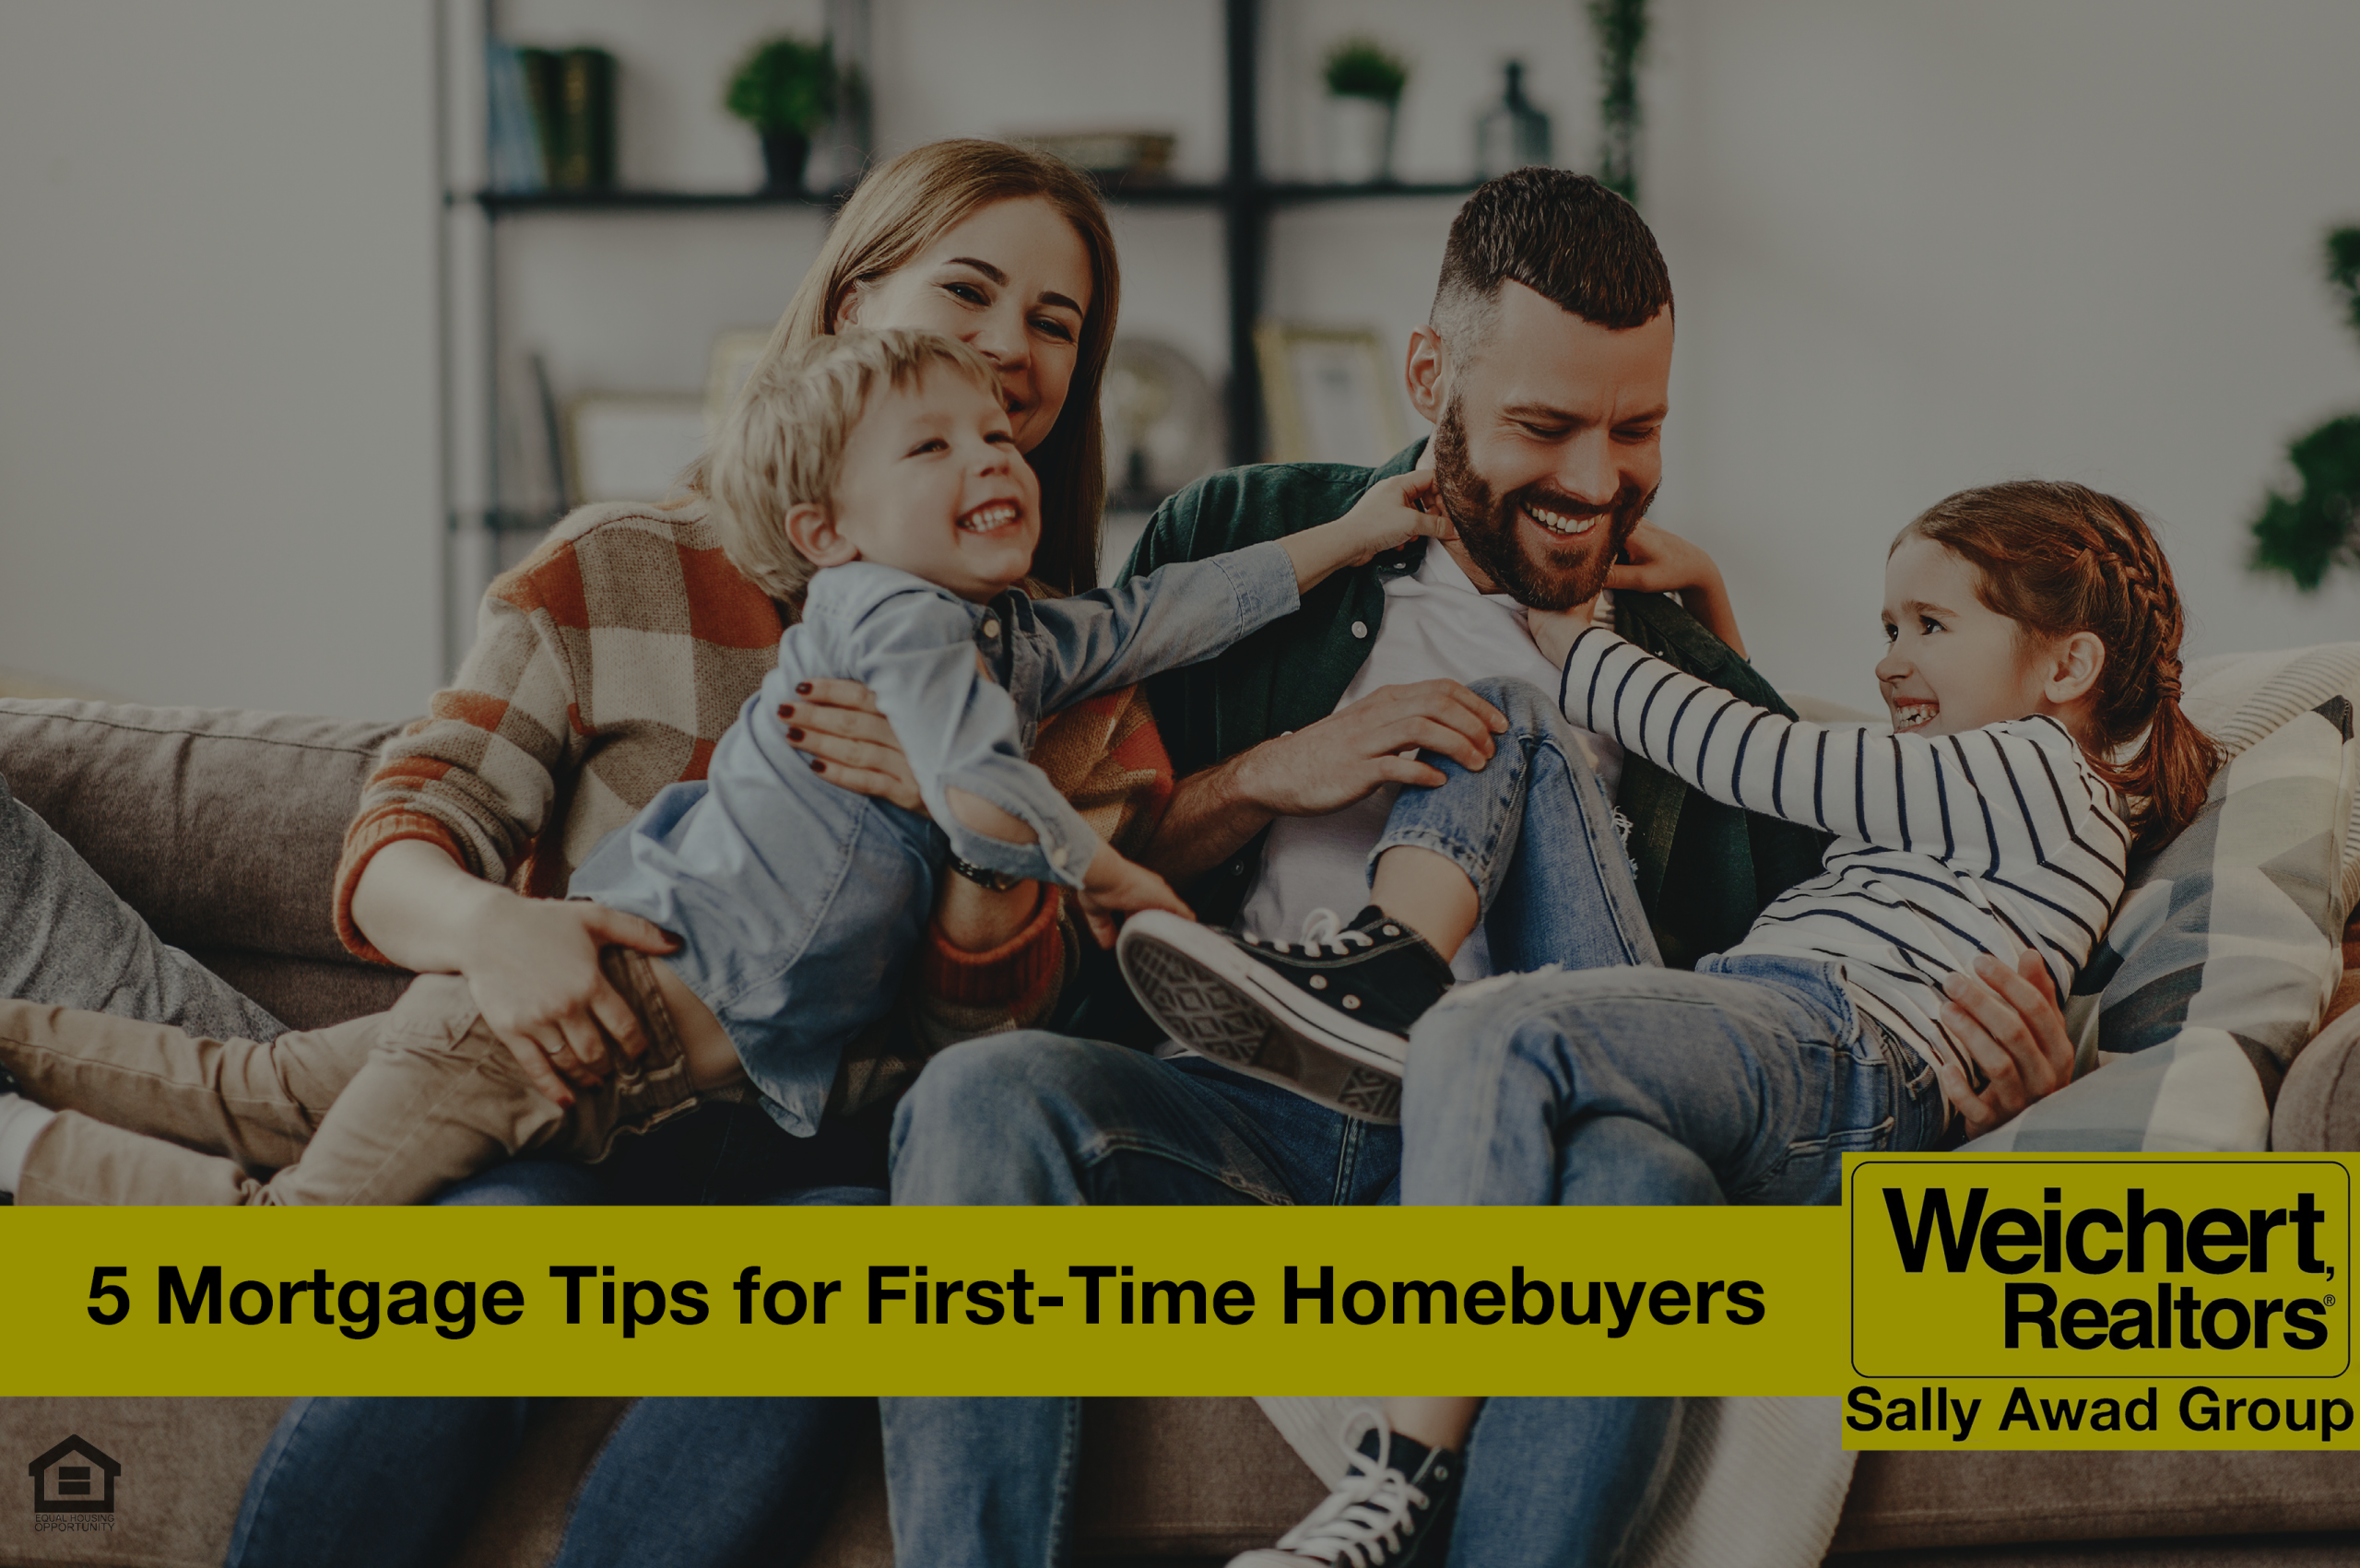 5 Mortgage Tips for First-Time Home Buyers